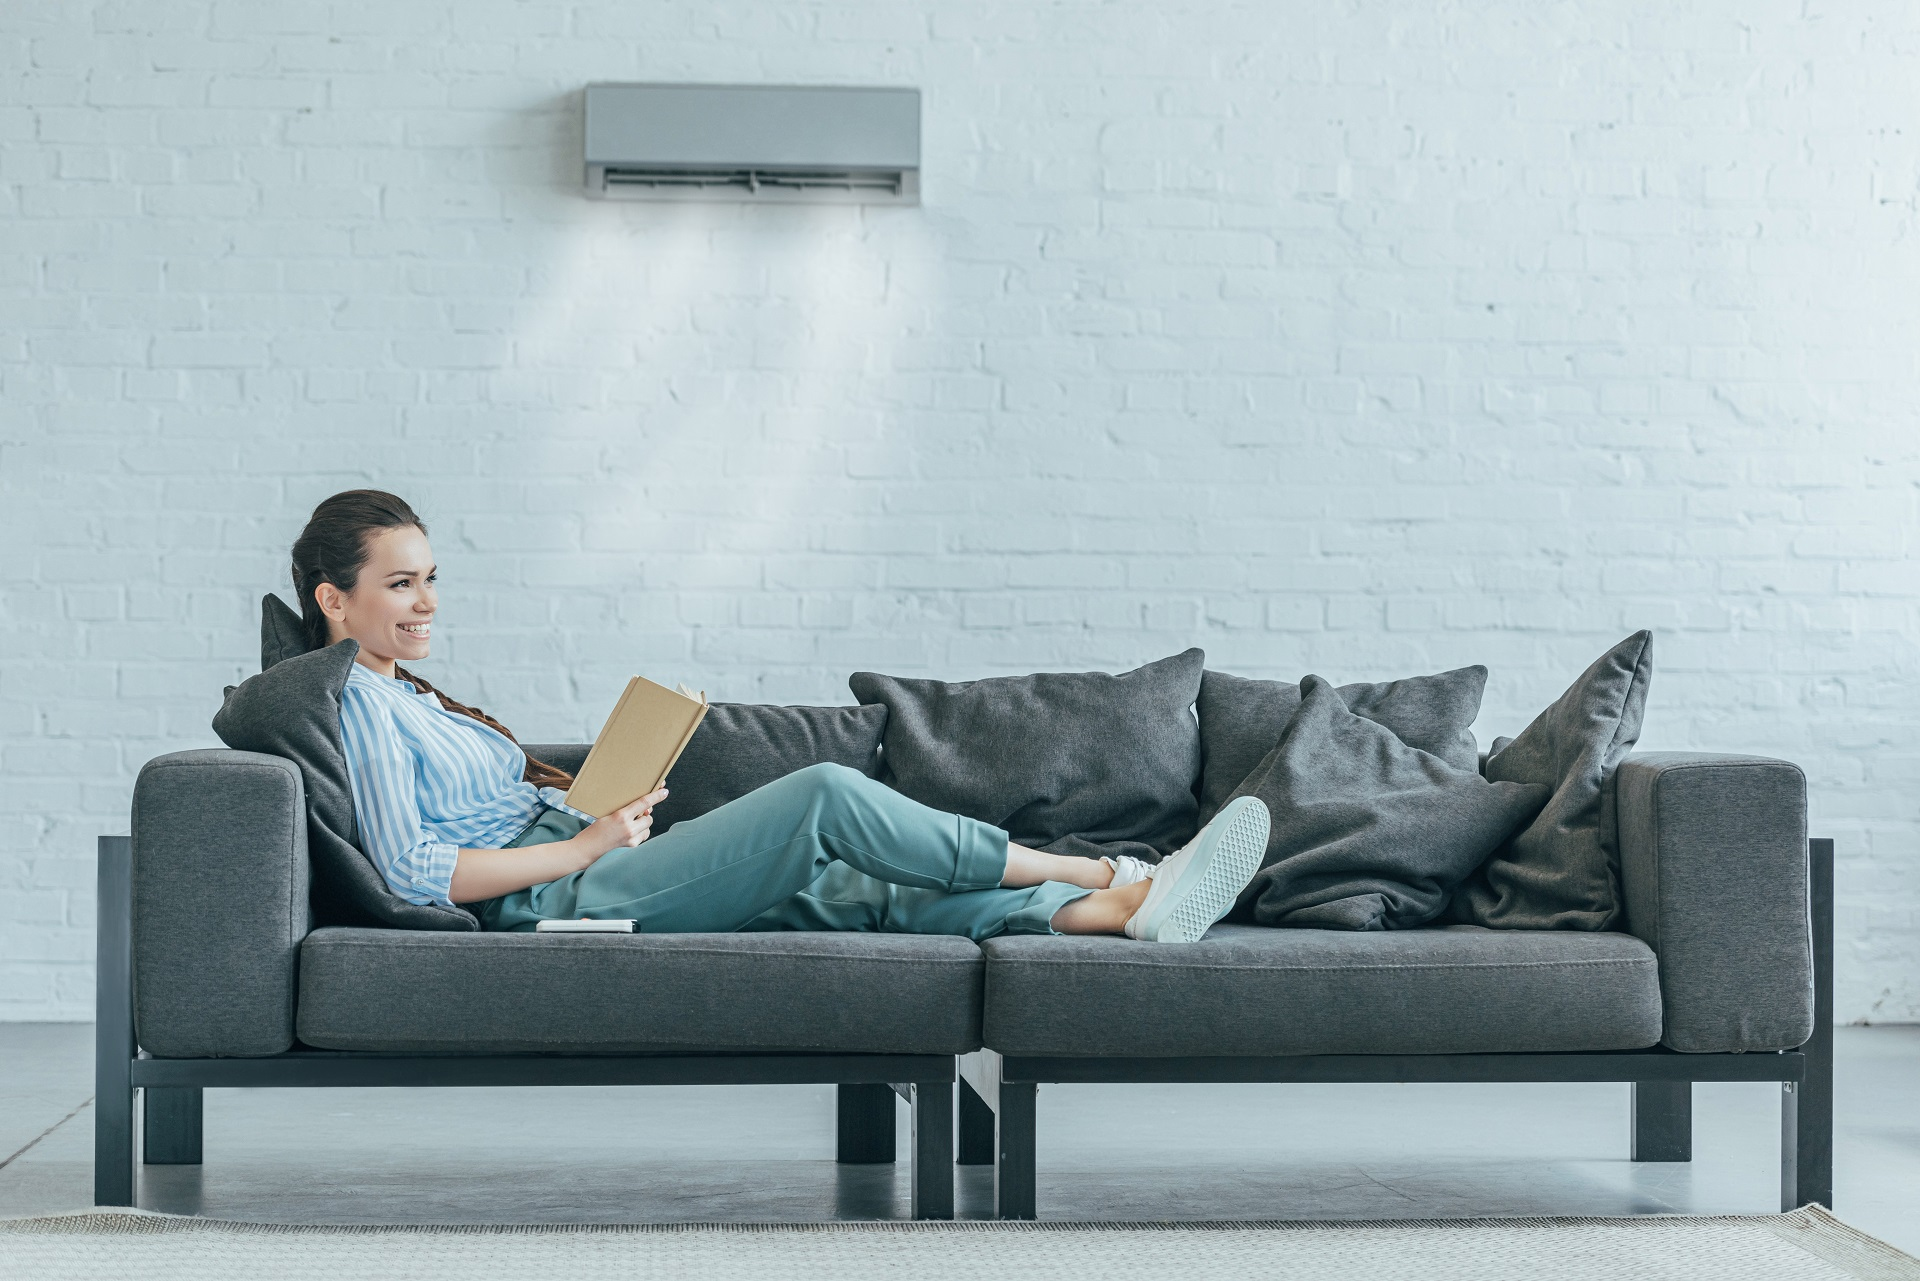 buying a new air conditioner